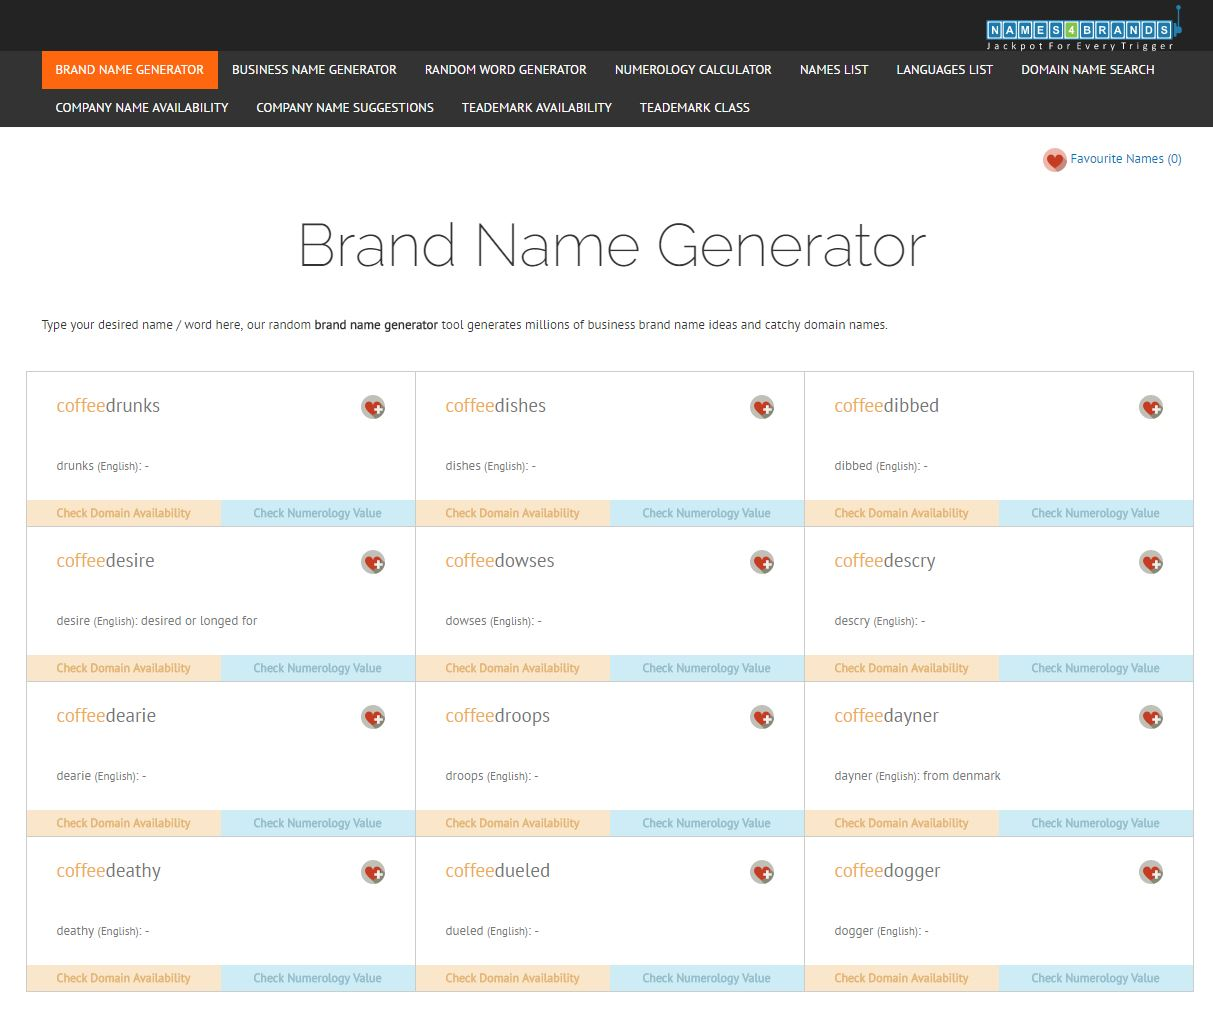 names4brands-one of the brand-name-generators